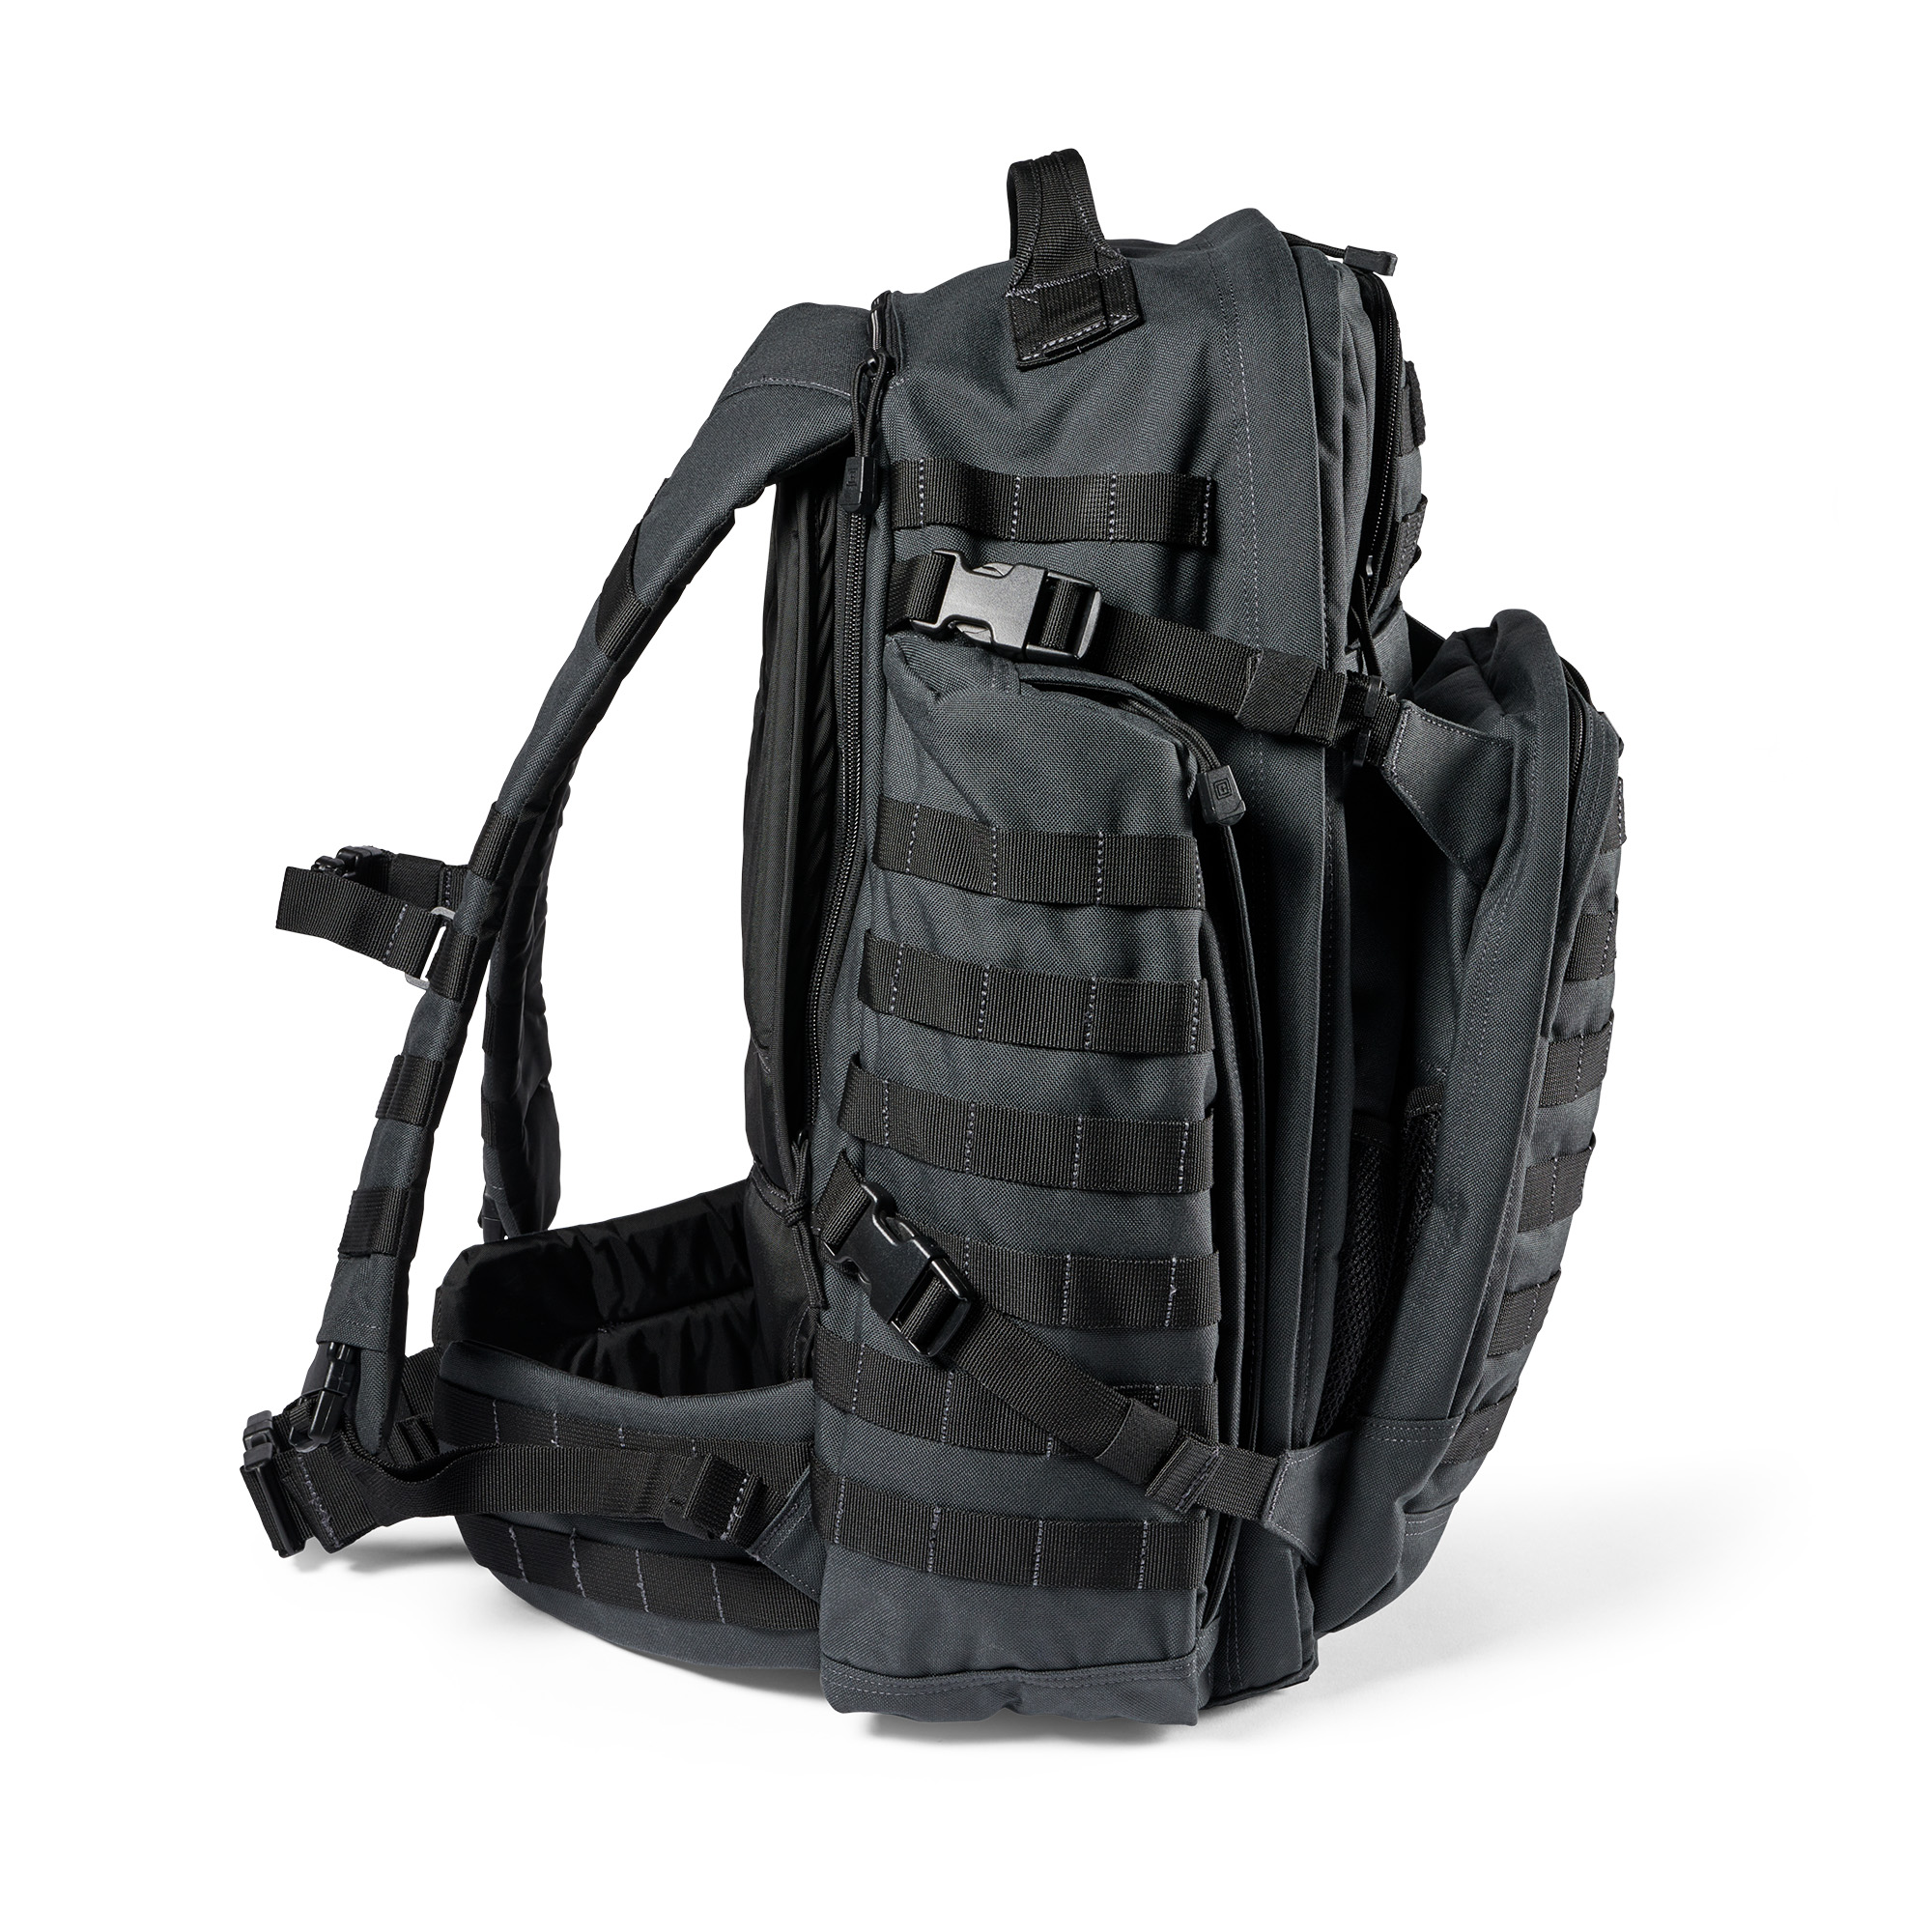 Balo 5.11 Tactical Rush 72 2.0 – Double Tap